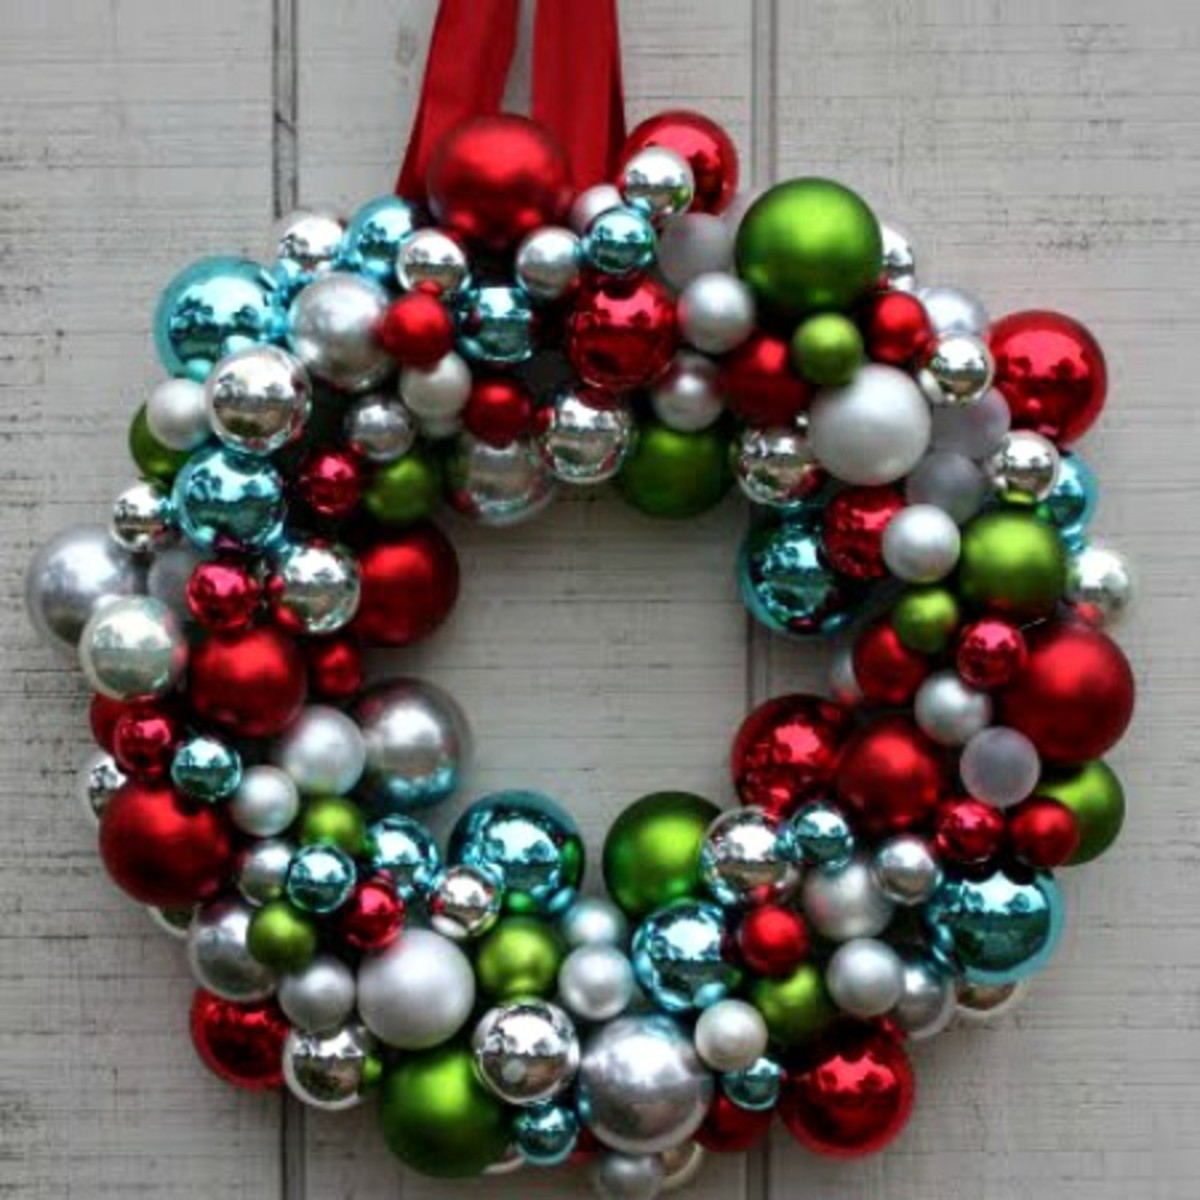 Image #5 - Old Glass Ball Christmas Ornament Wreath